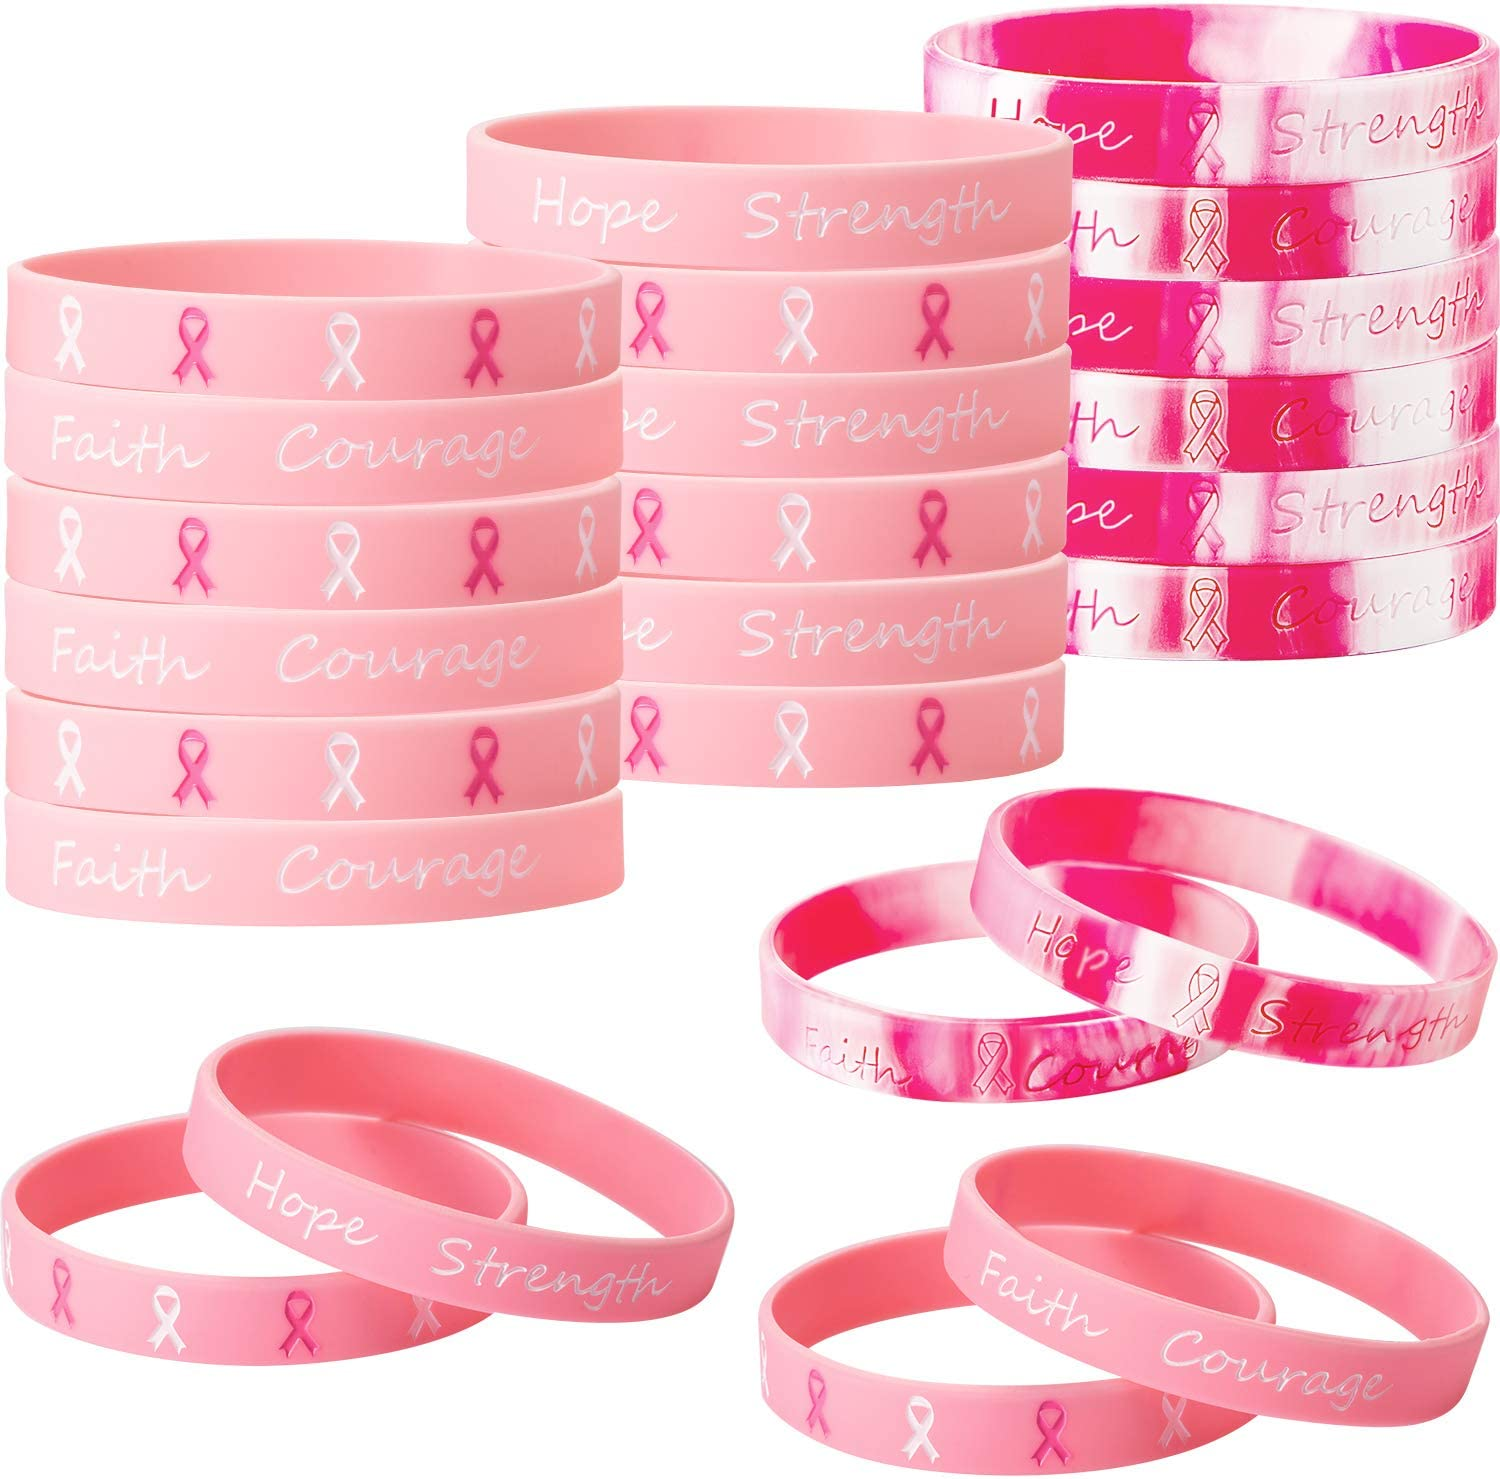 48 Pieces Breast Cancer High order Awareness Silicone Pink Brand Cheap Sale Venue Ribbon Wristband